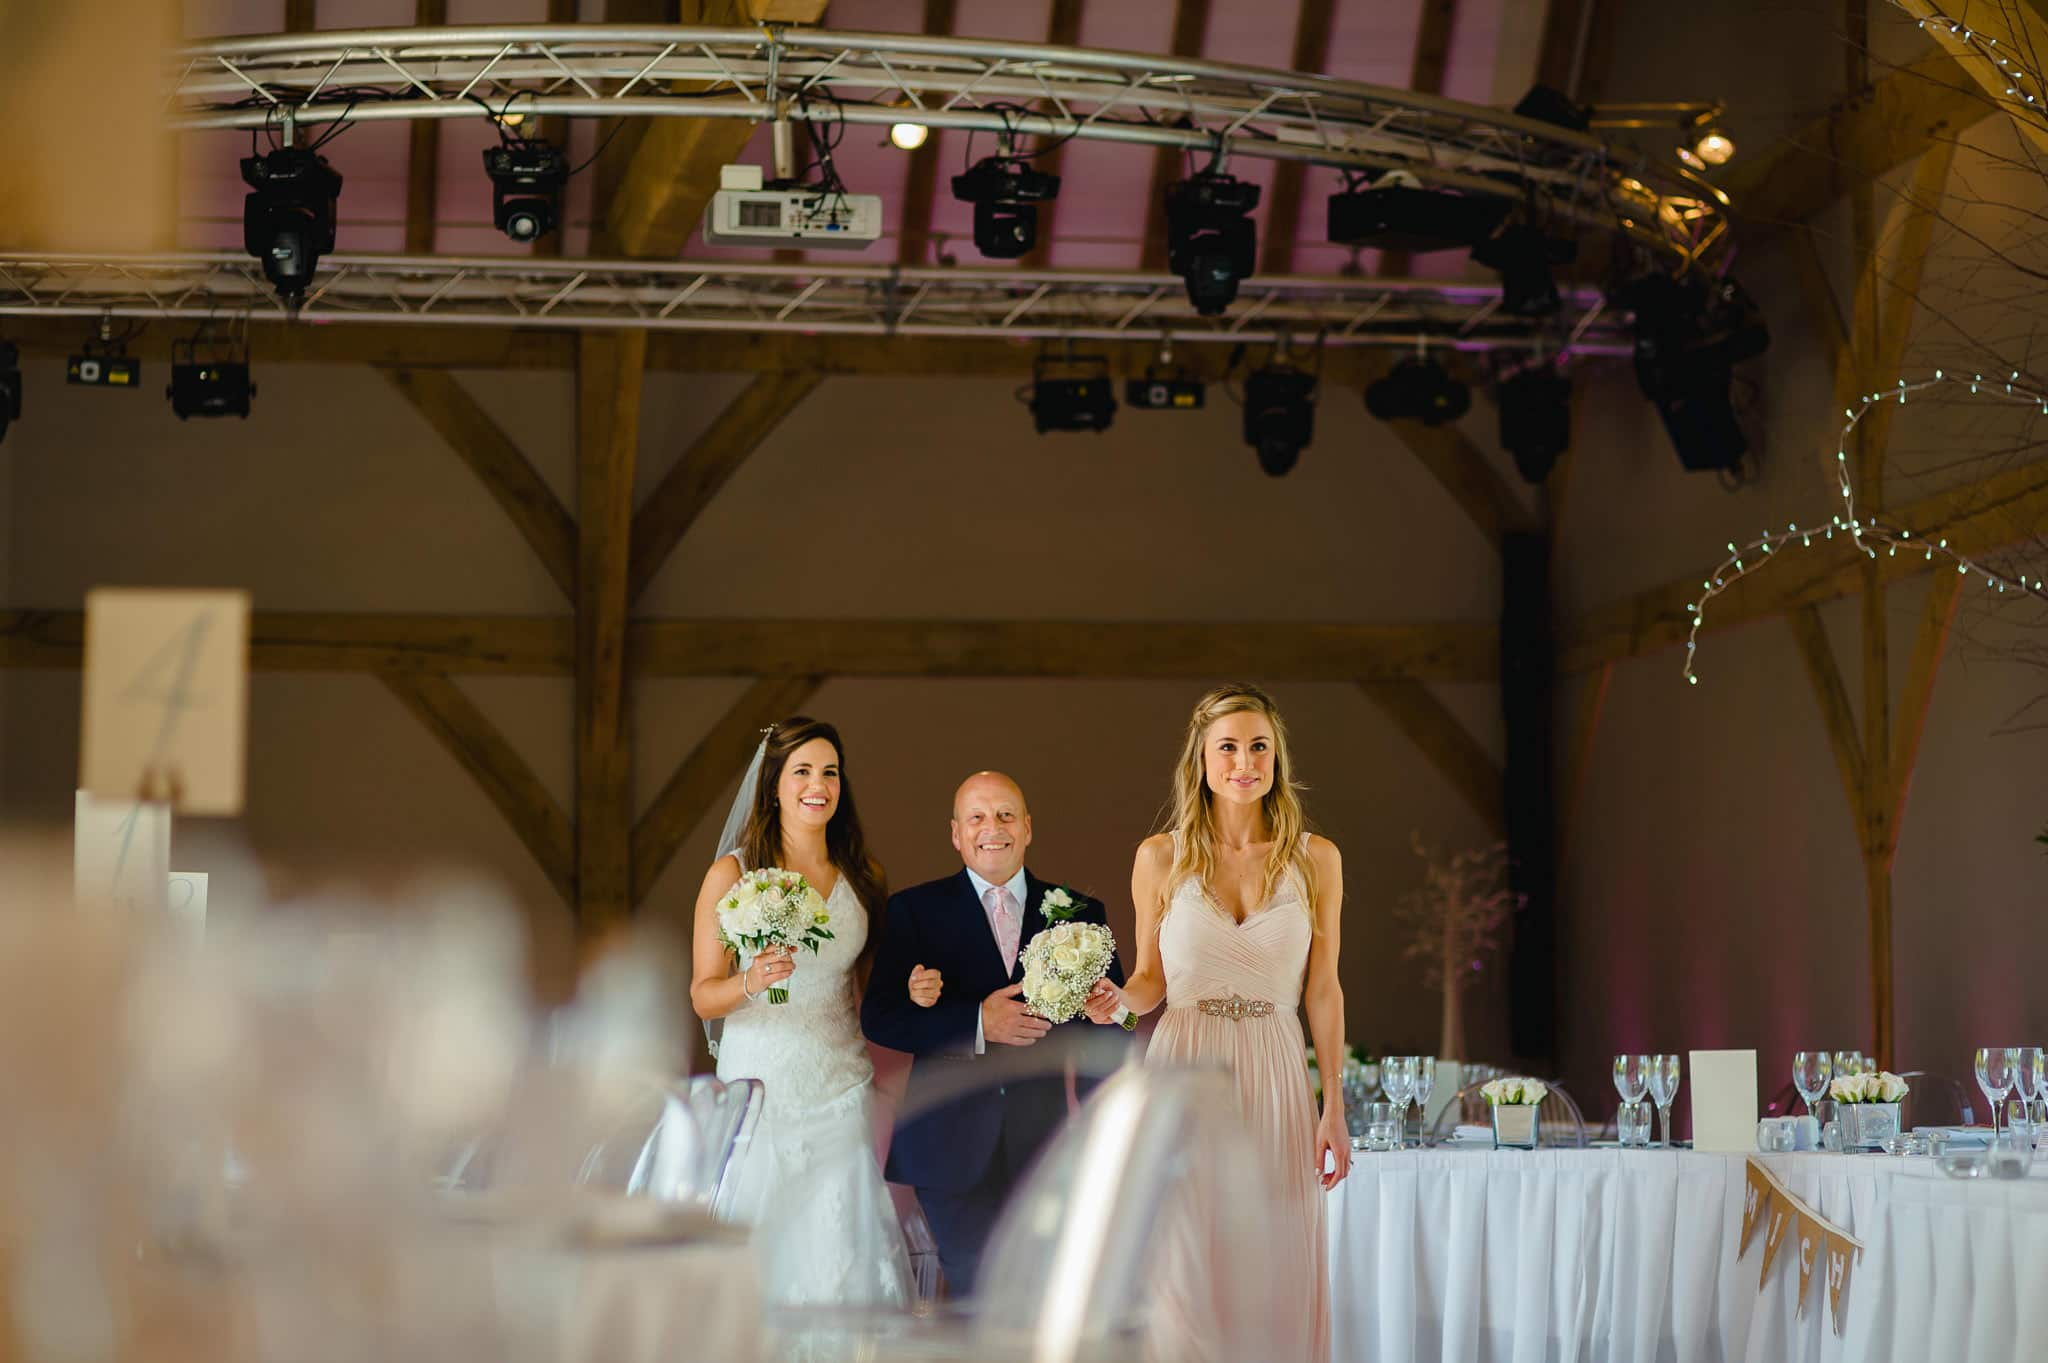 wedding at redhouse barn 66 - Wedding at Redhouse Barn in Stoke Prior, Worcestershire